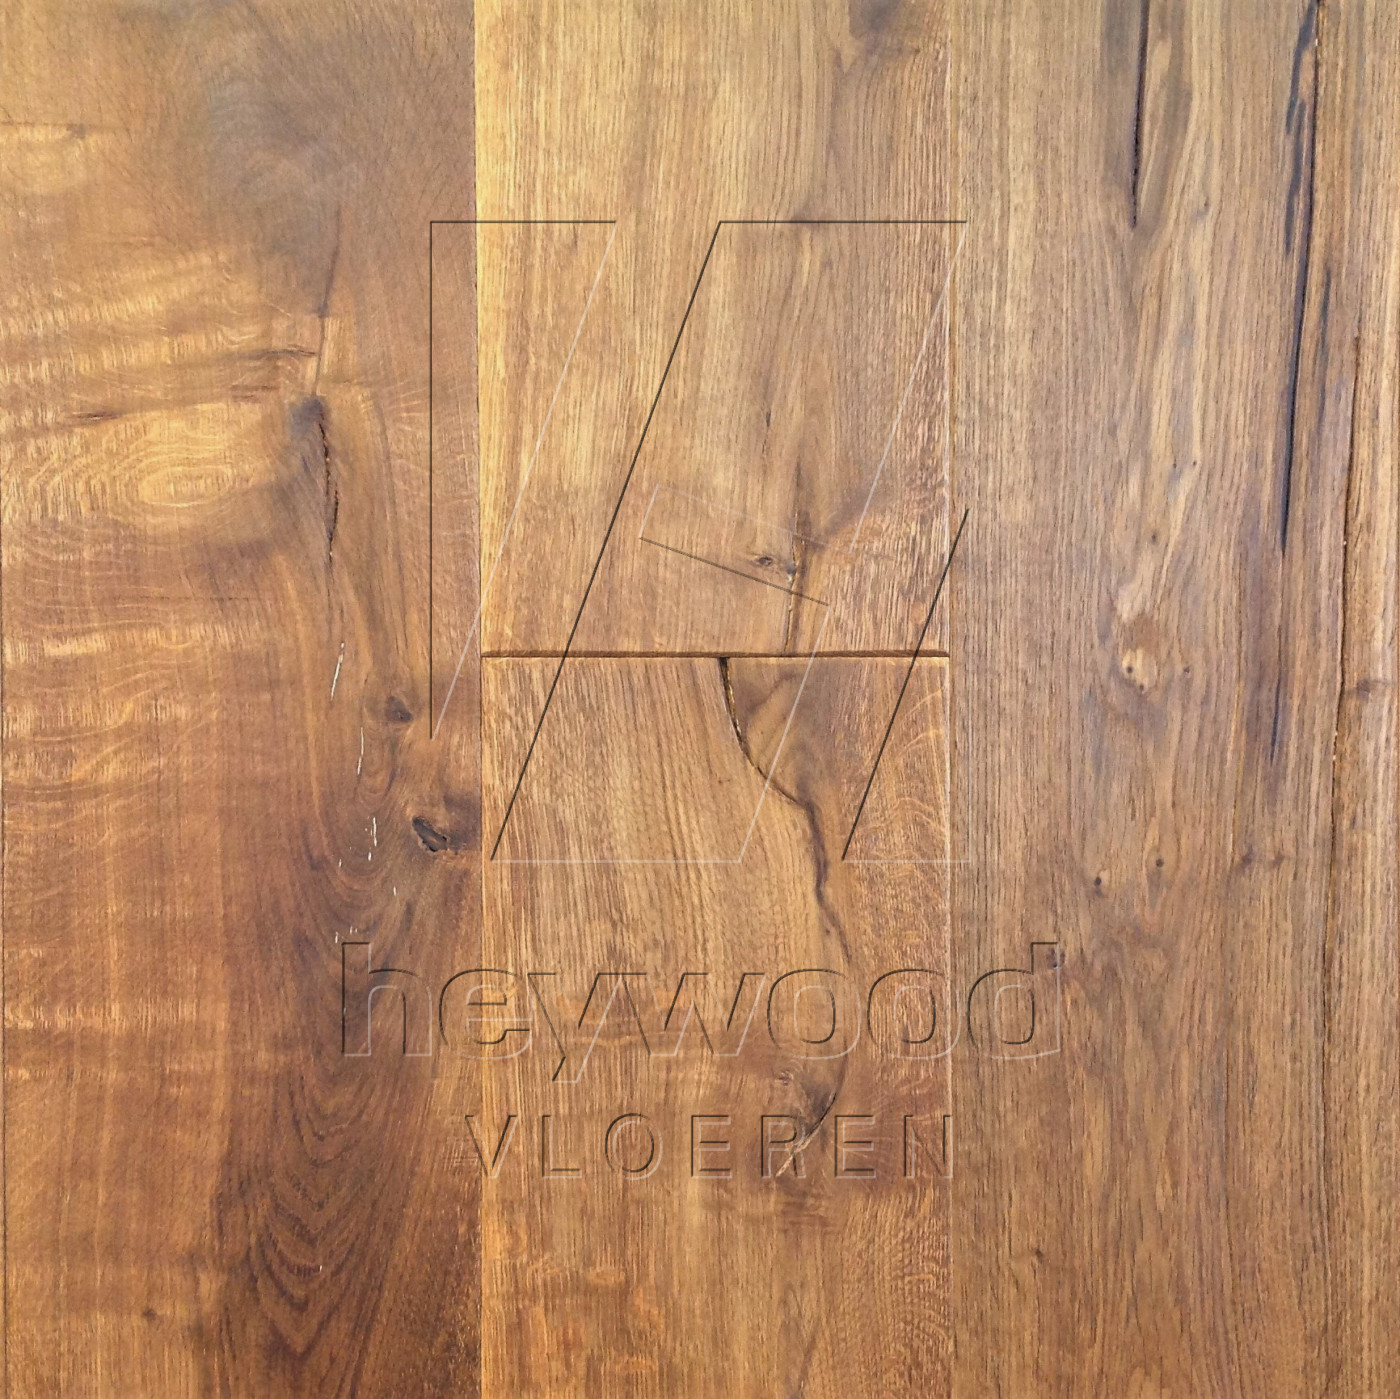 Antique Plank 'Kilimanjaro' in Aged Antique Surface of Aged Hardwood Floors